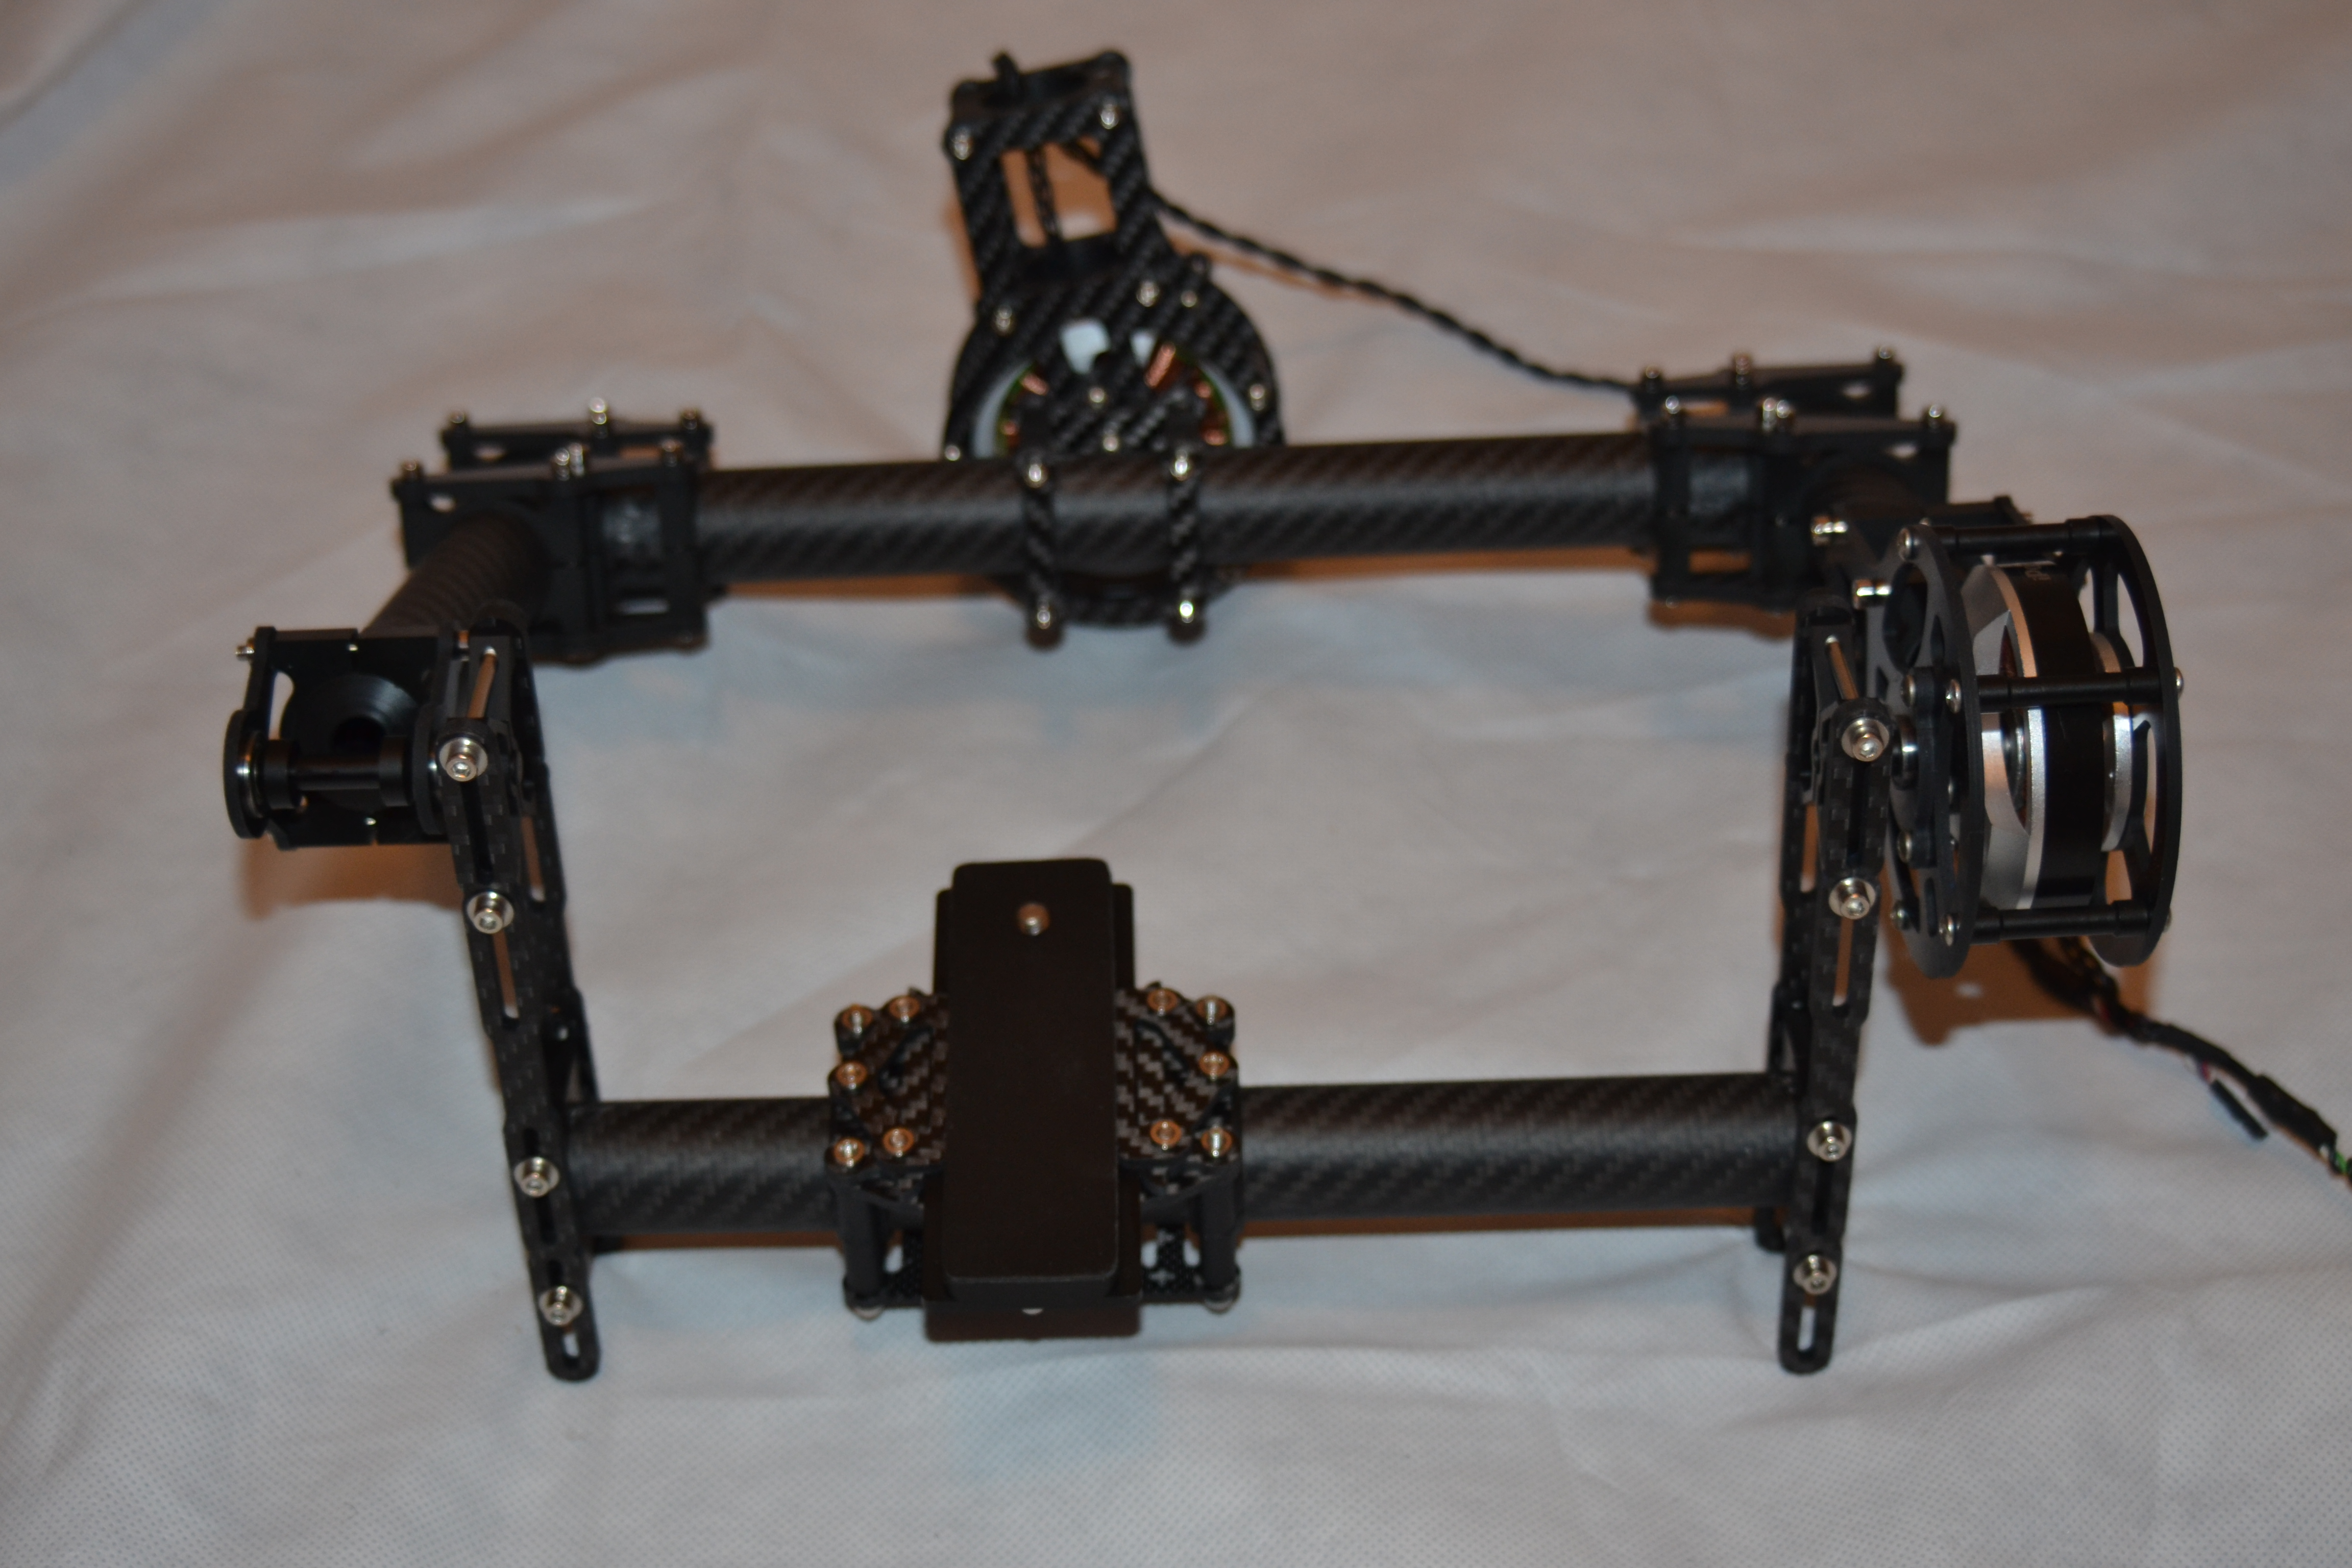 CINESTAR New 2 Axis Brushless GIMBAL system KIT